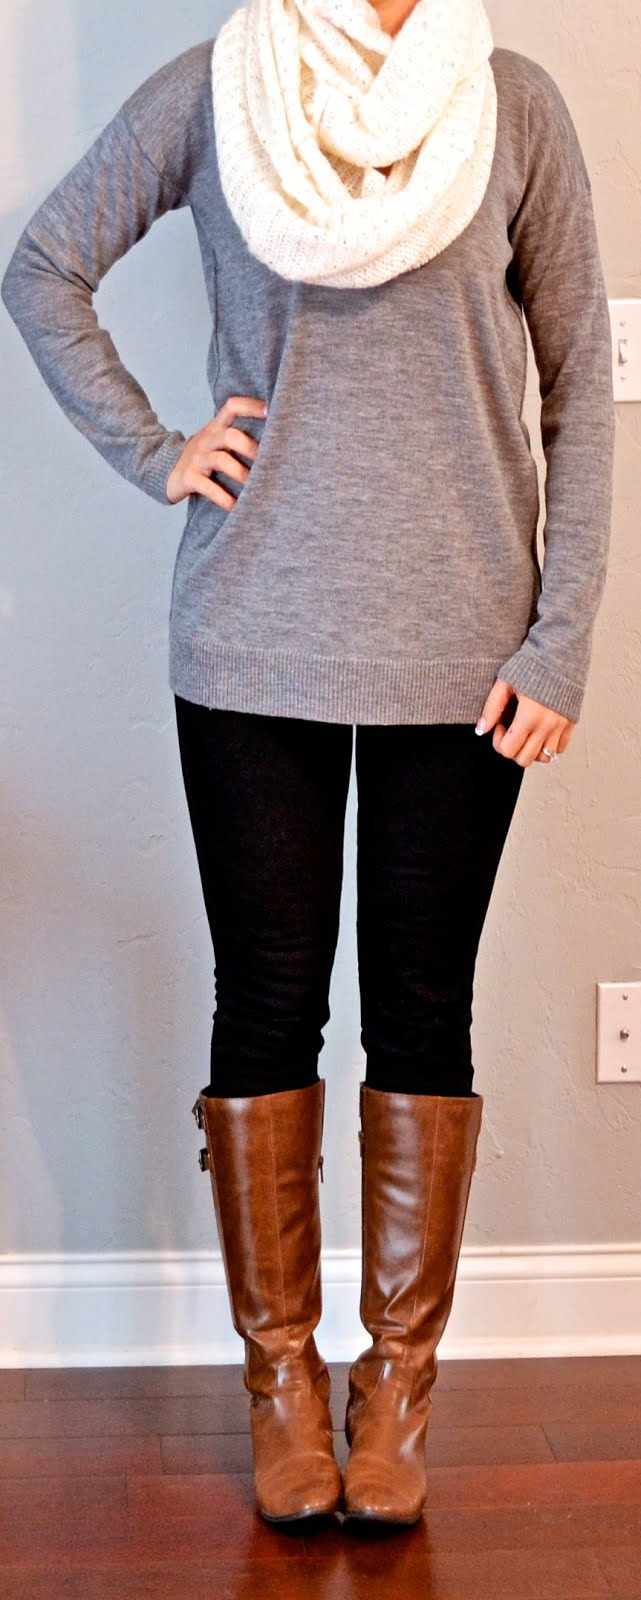 Outfit Posts outfit post grey tunic sweater black skinny jeans cream infinity scarf